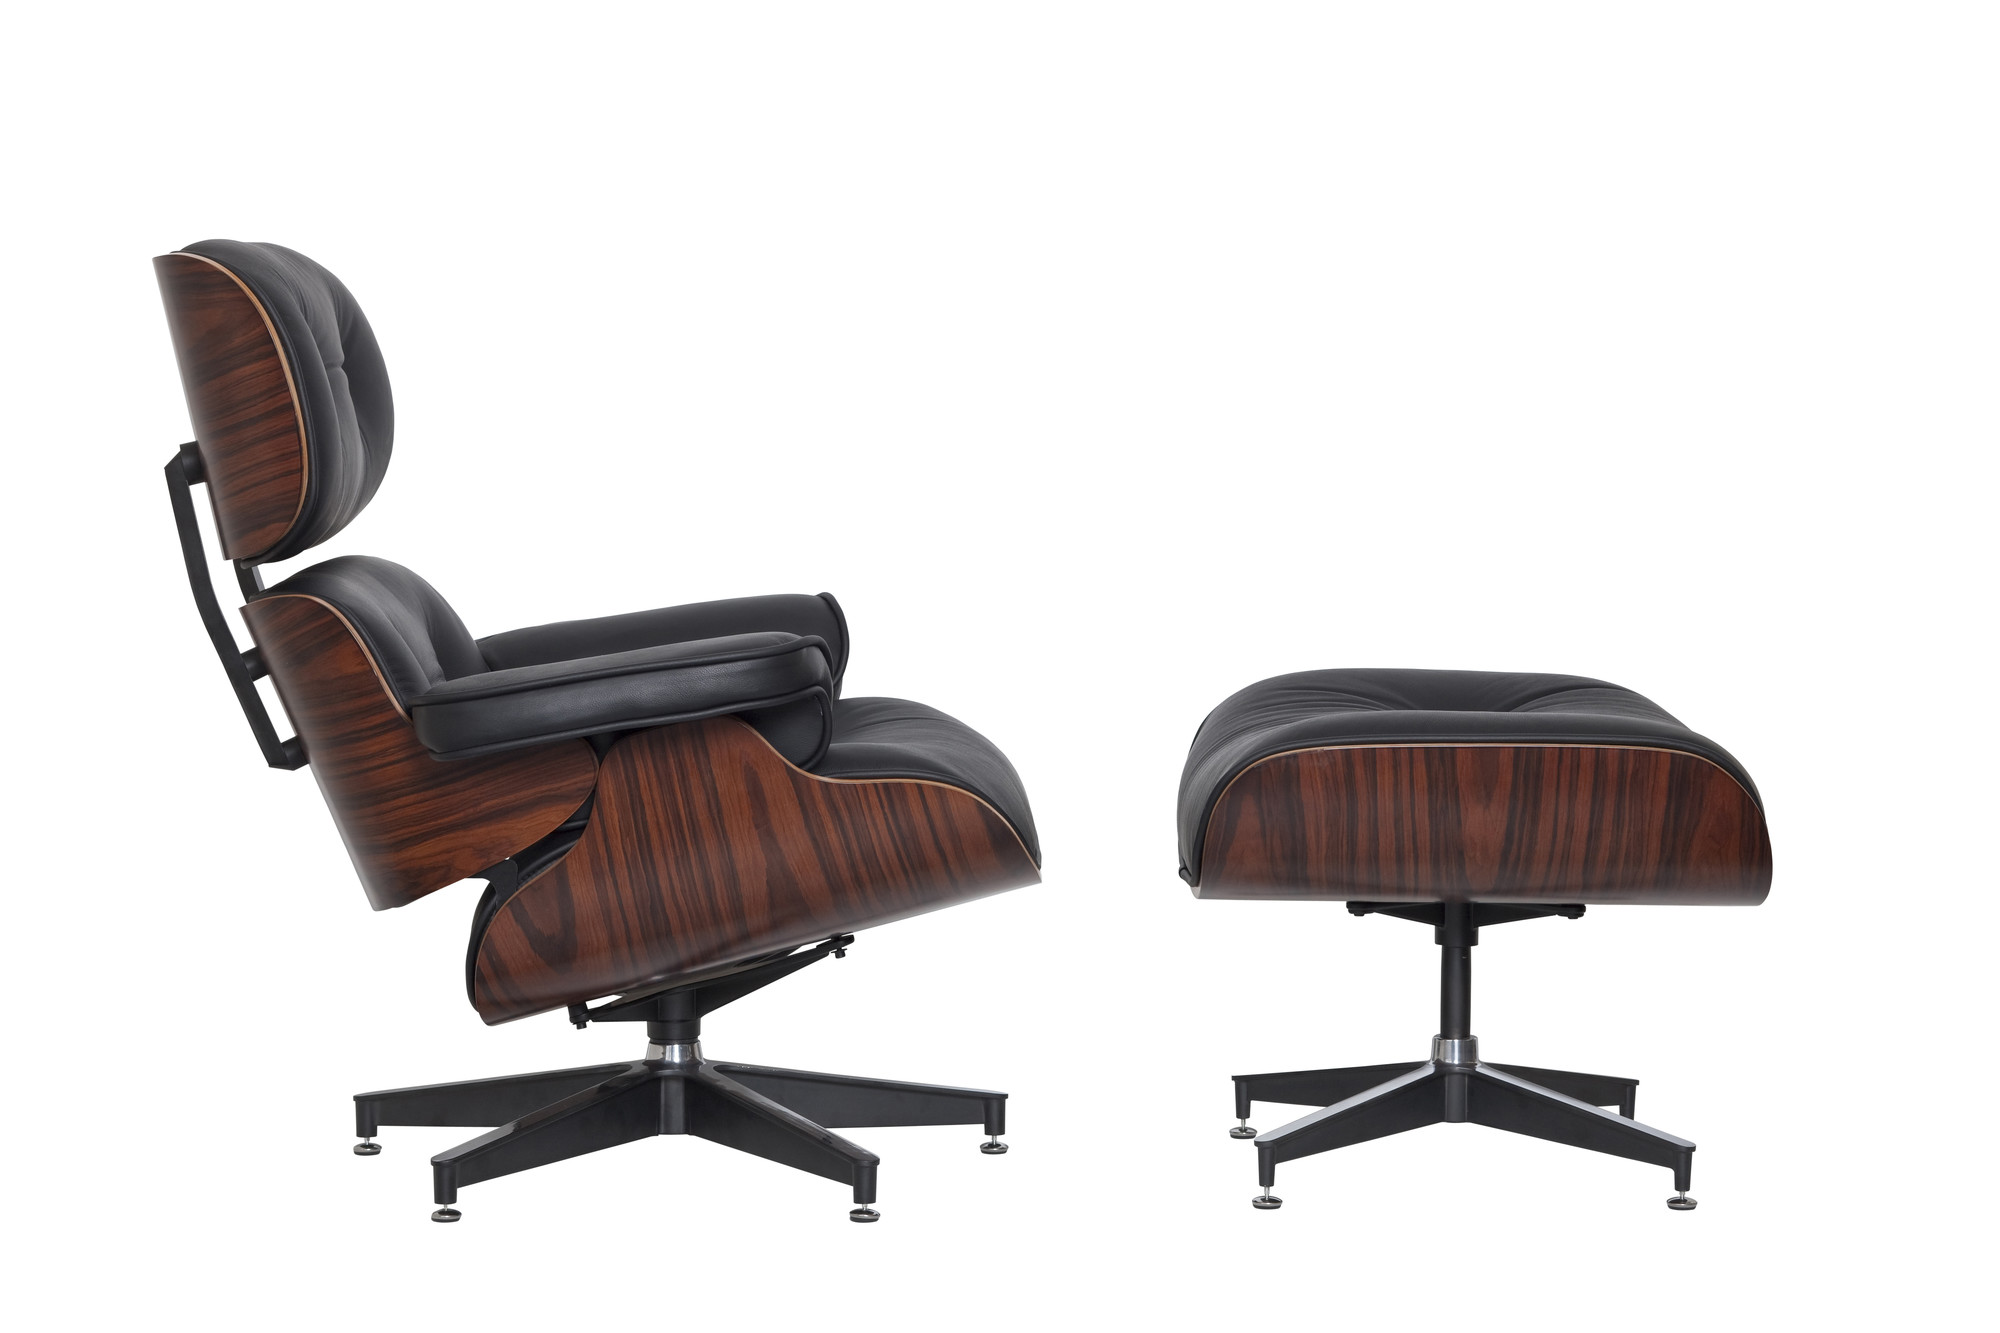 new eames classic replica lounge chair ottoman ebay. Black Bedroom Furniture Sets. Home Design Ideas